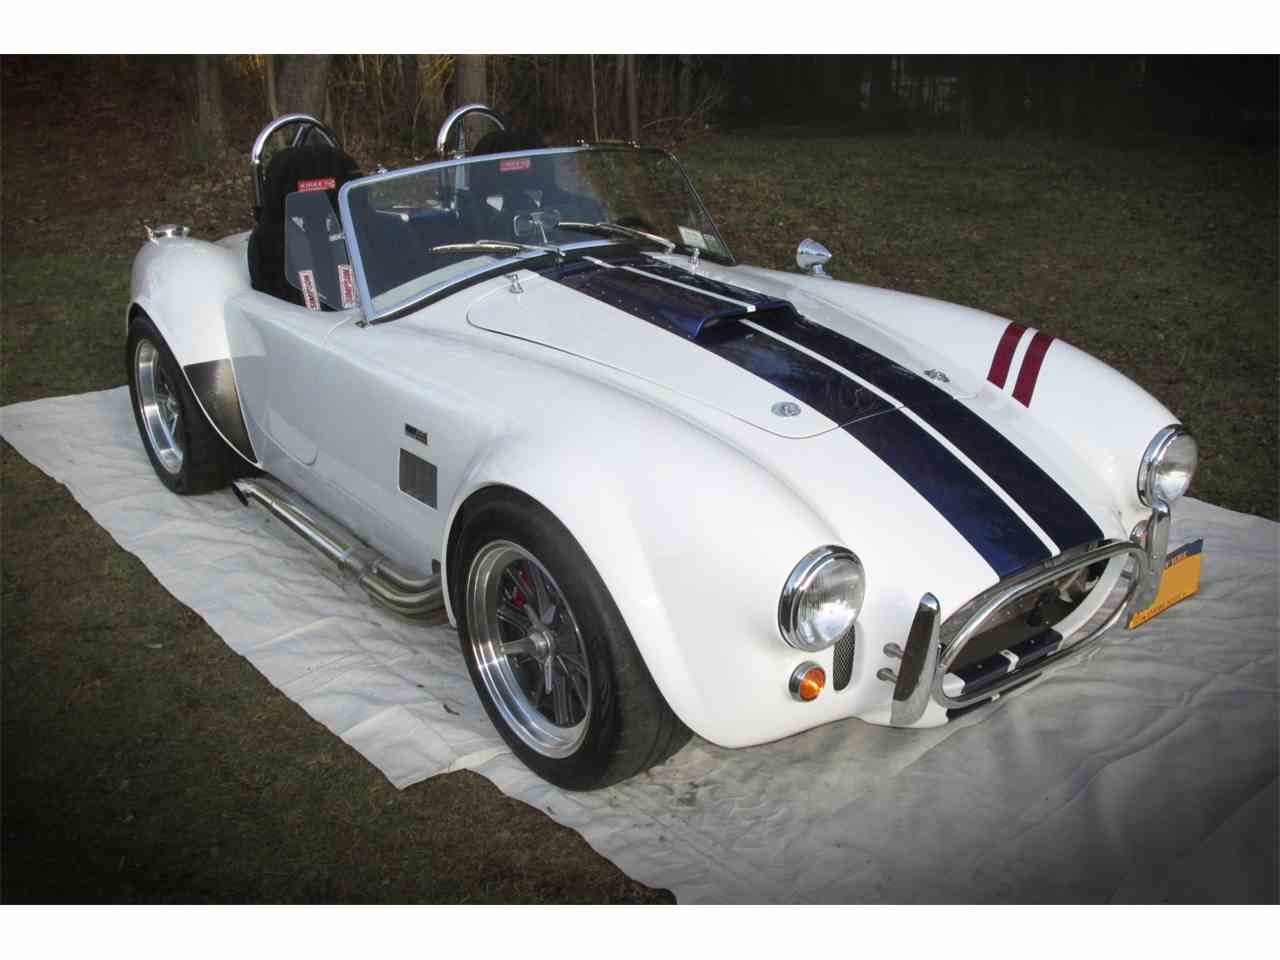 Large Picture of '65 Shelby Cobra Replica located in Speculator New York - $49,000.00 Offered by a Private Seller - N693